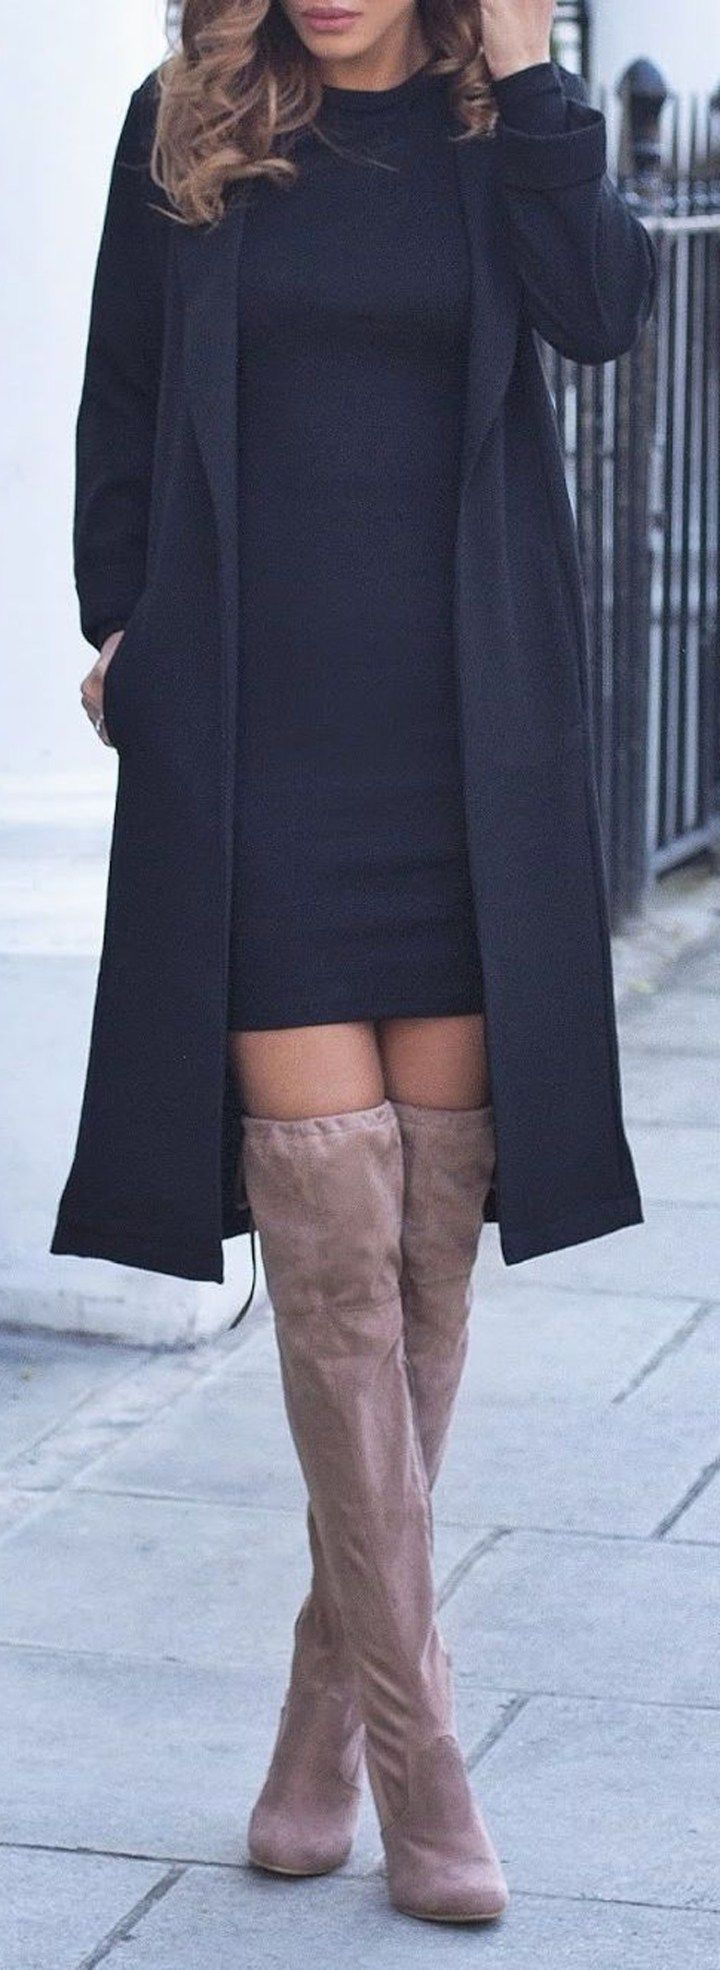 Chic Classy Elegant Winter Outfit Ideas for Women for ...